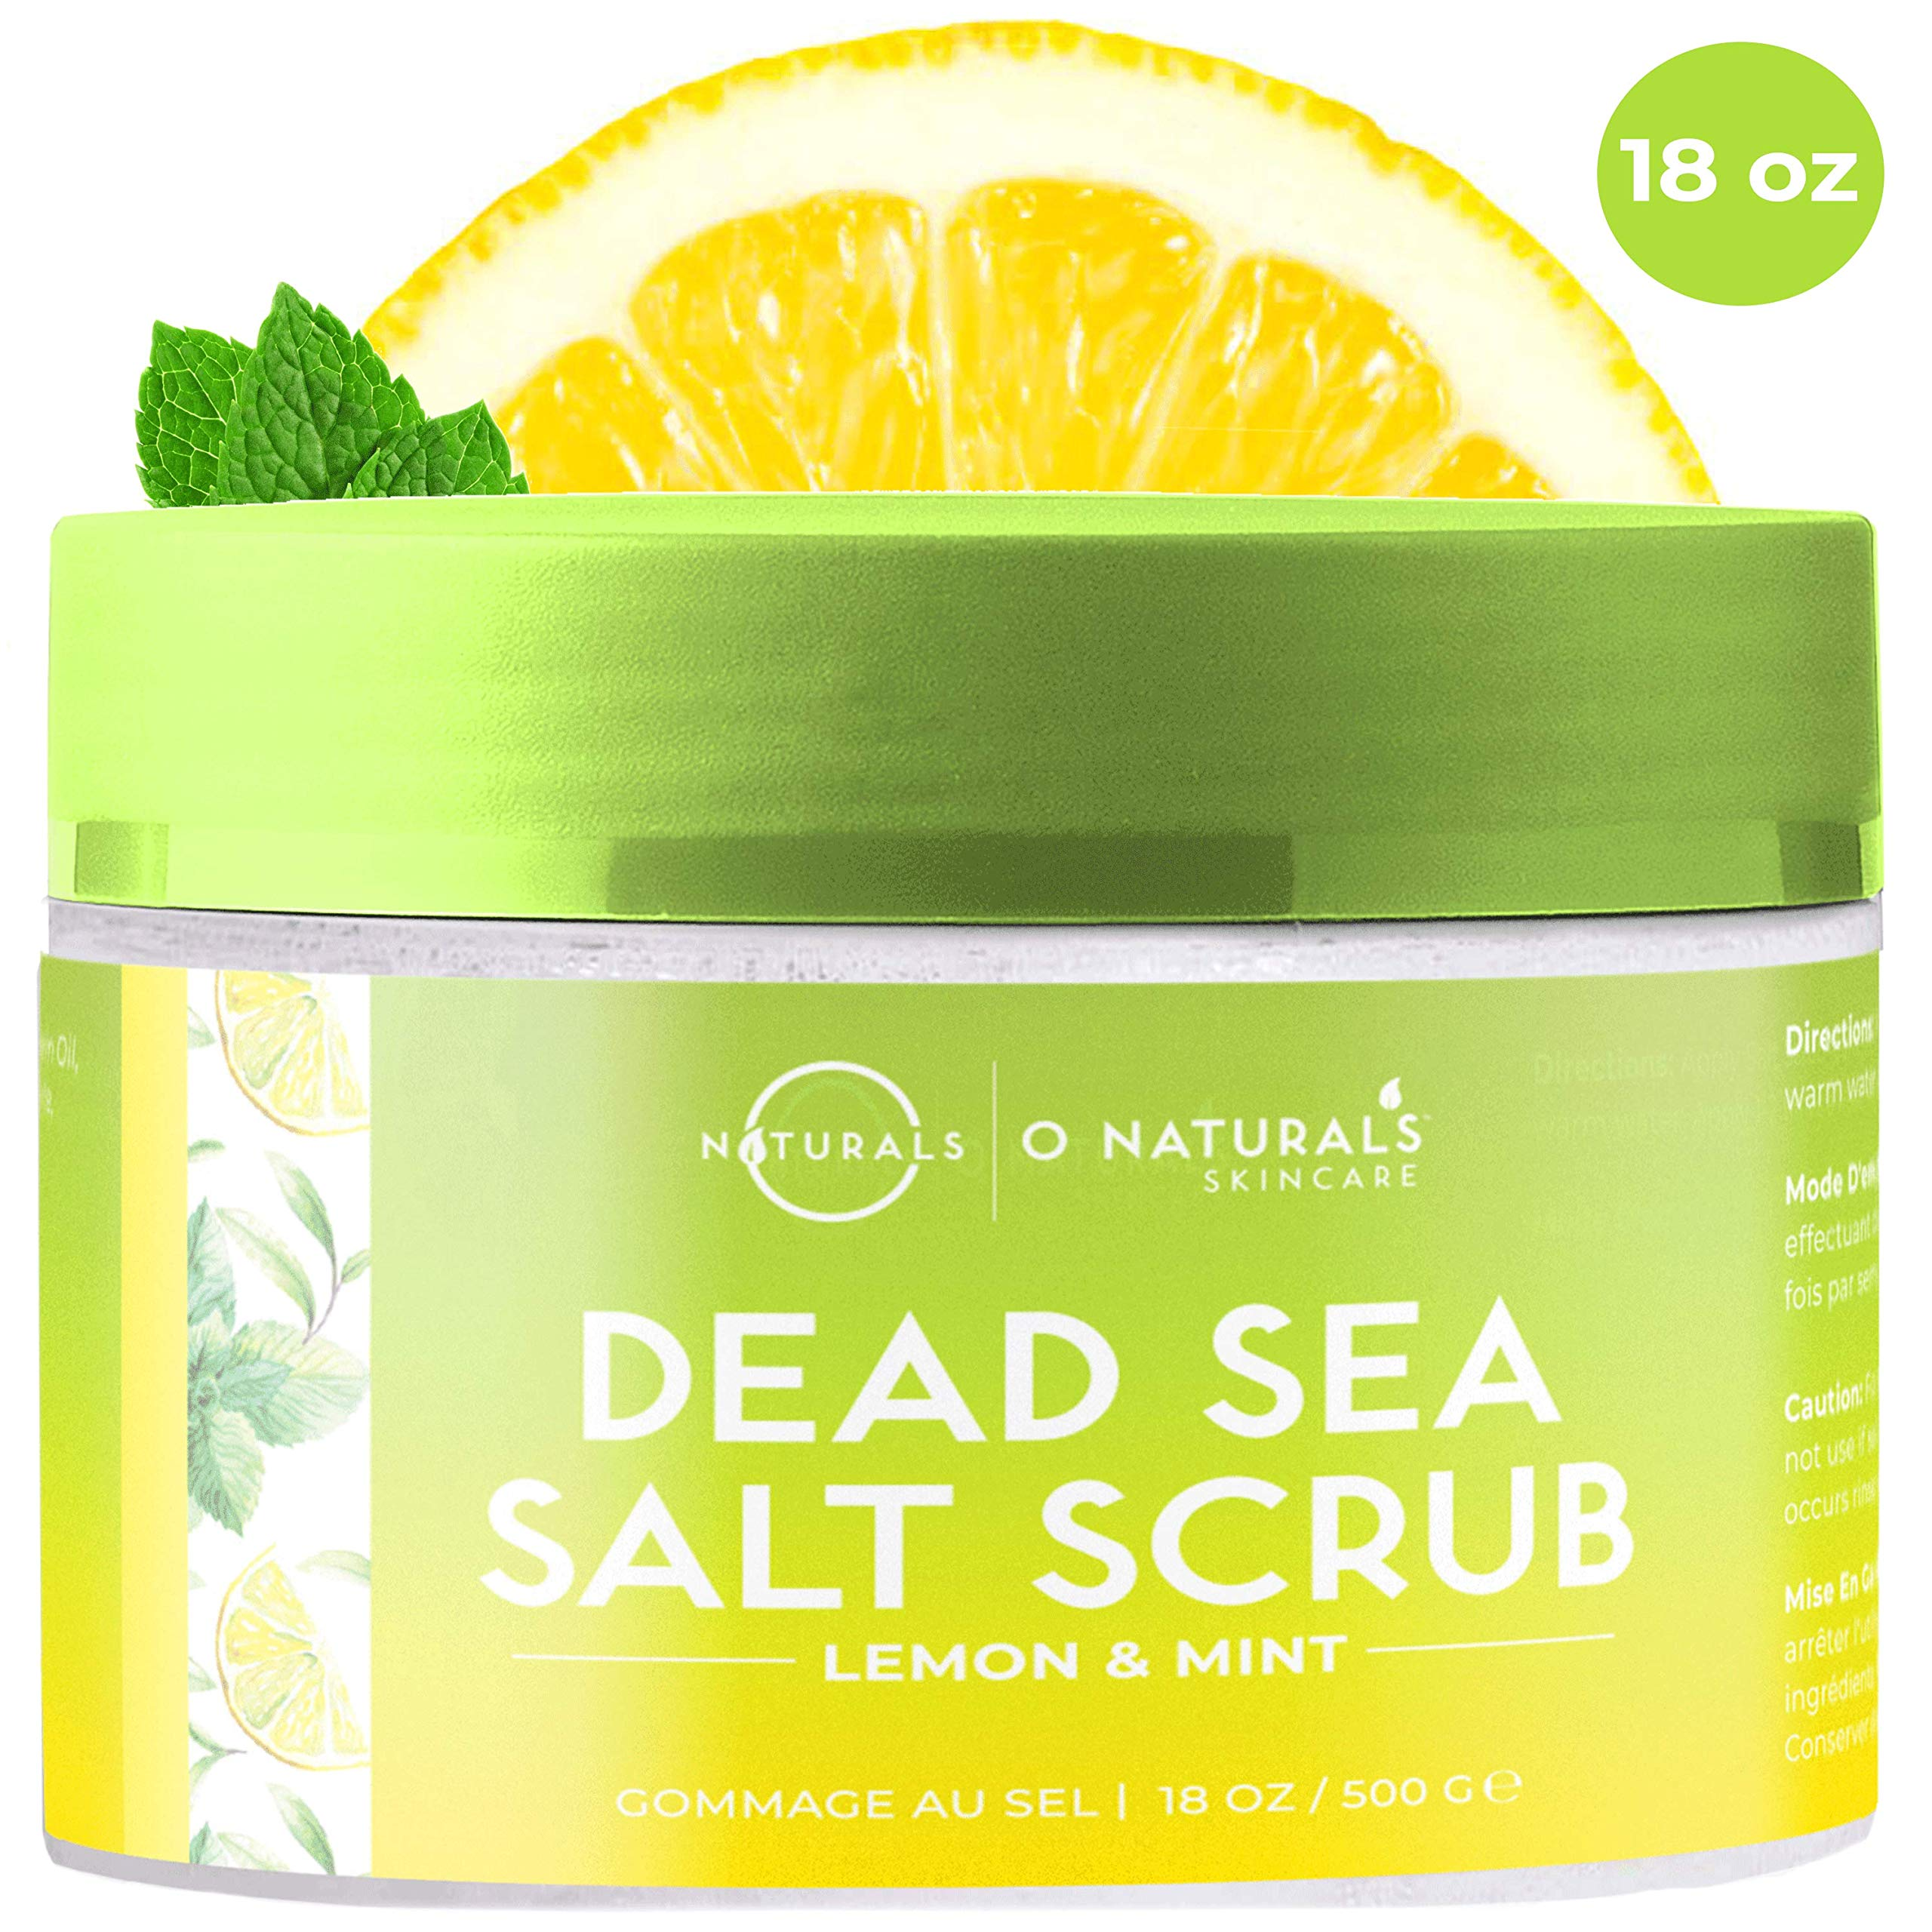 O Naturals Exfoliating Lemon Oil Dead Sea Salt Deep-Cleansing Face & Body Scrub. Anti-Cellulite Tones Treats Oily Skin, Acne, Ingrown Hairs & Dead Skin Remover. Essential Oils, Sweet Almond 18oz by O Naturals